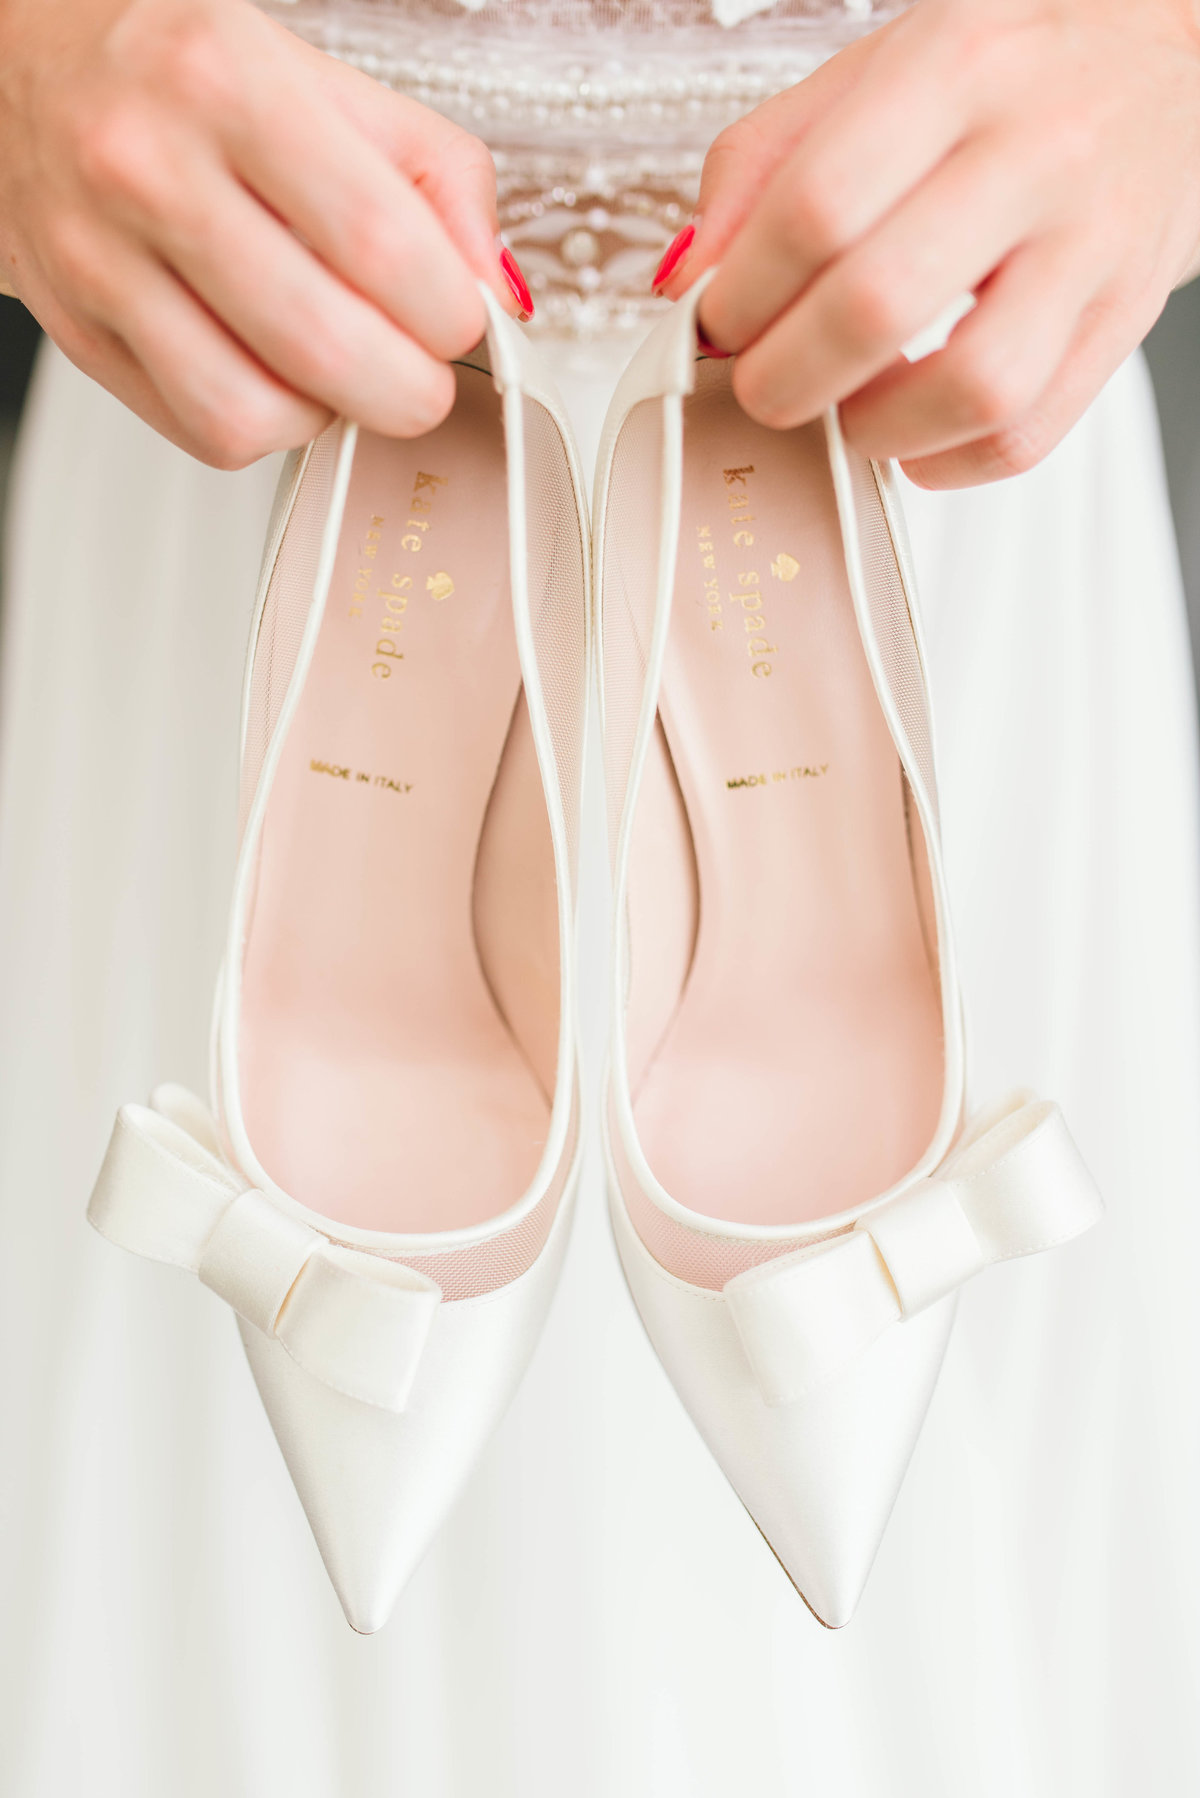 Bride holding Kate Spade wedding shoes